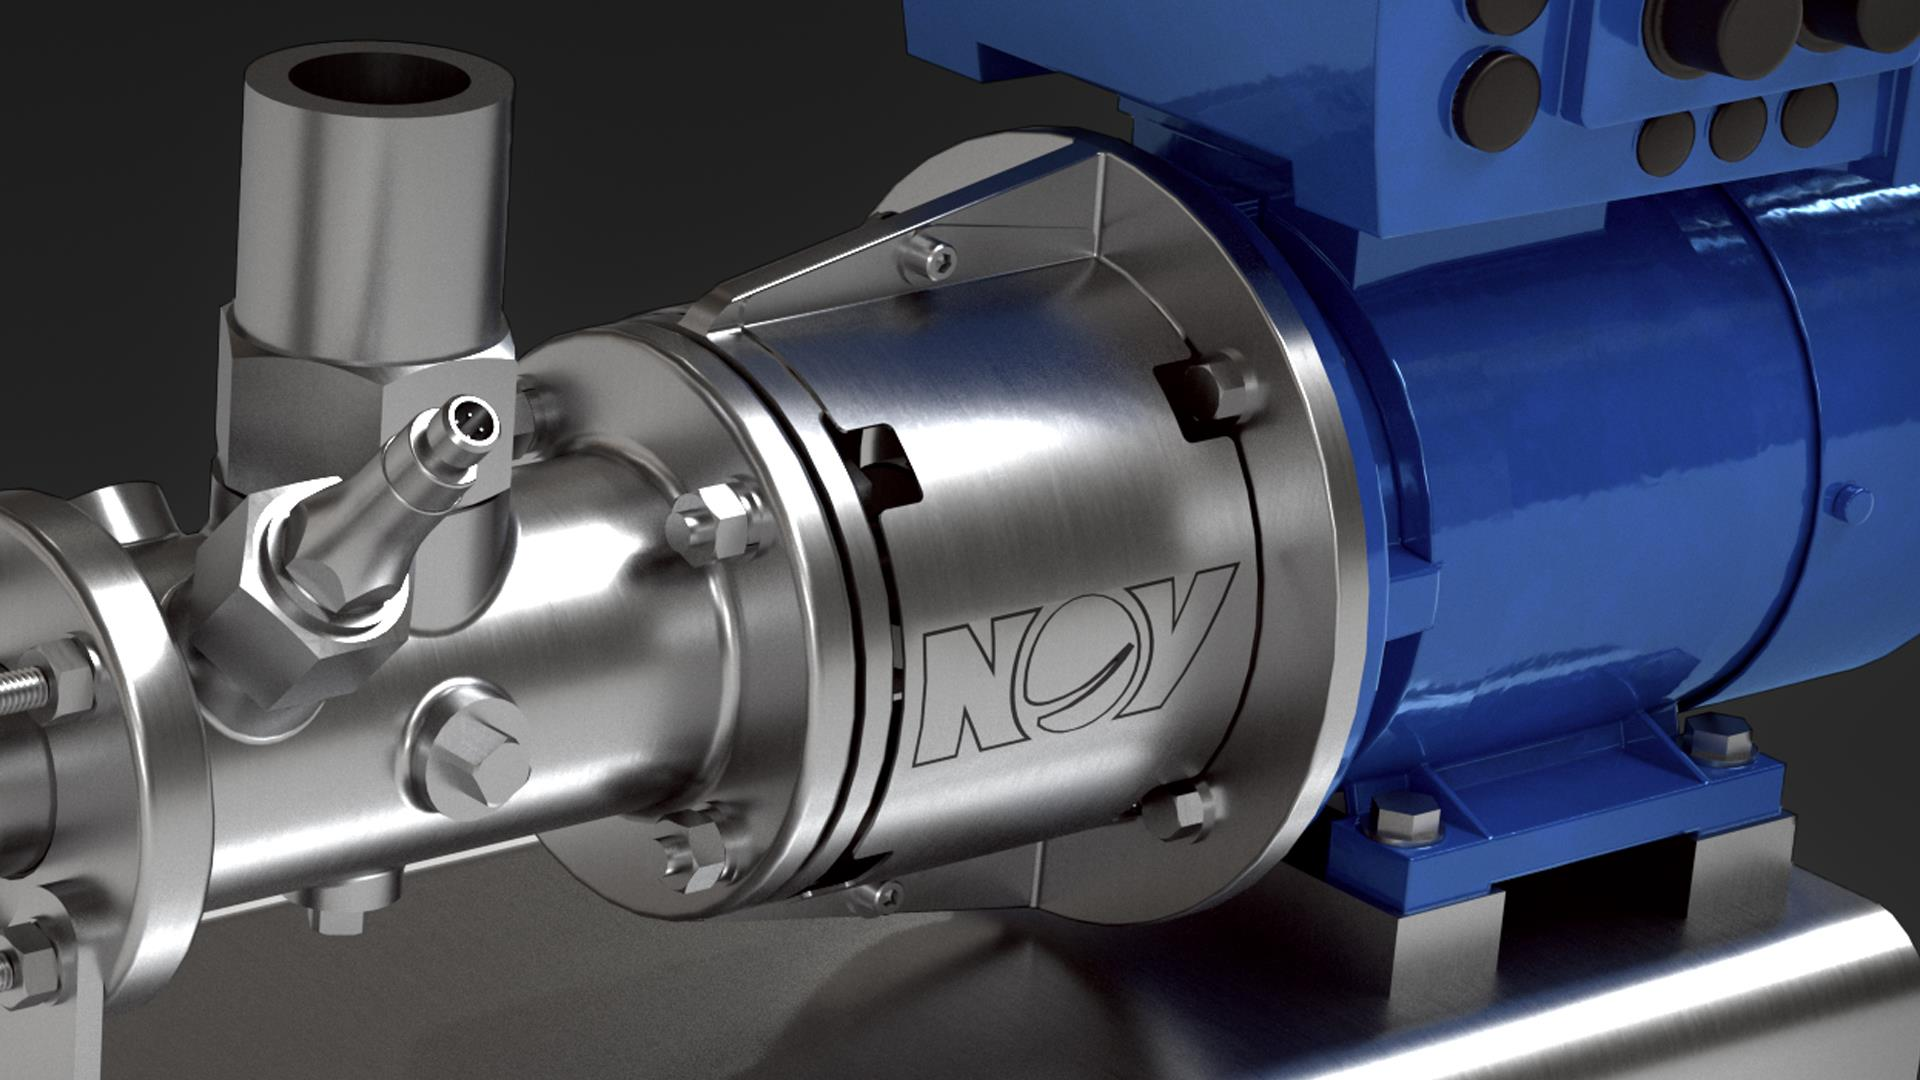 Render of pumping equipment with an engraved NOV logo